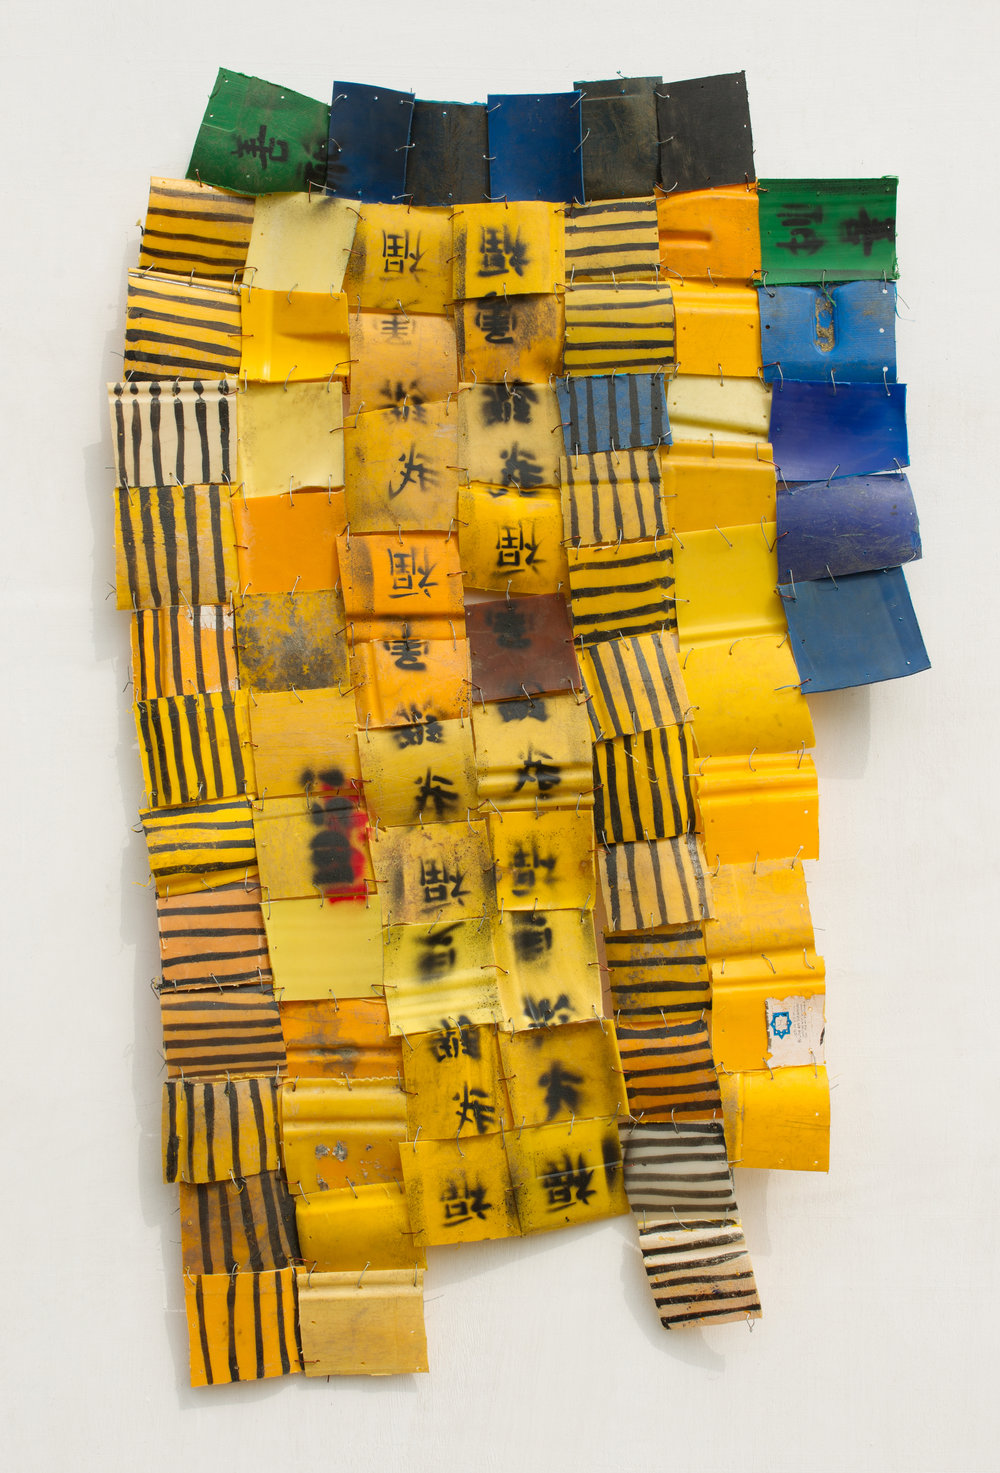 Serge Attukwei Clottey,  The night before , 2016, plastics, wire and oil paint.